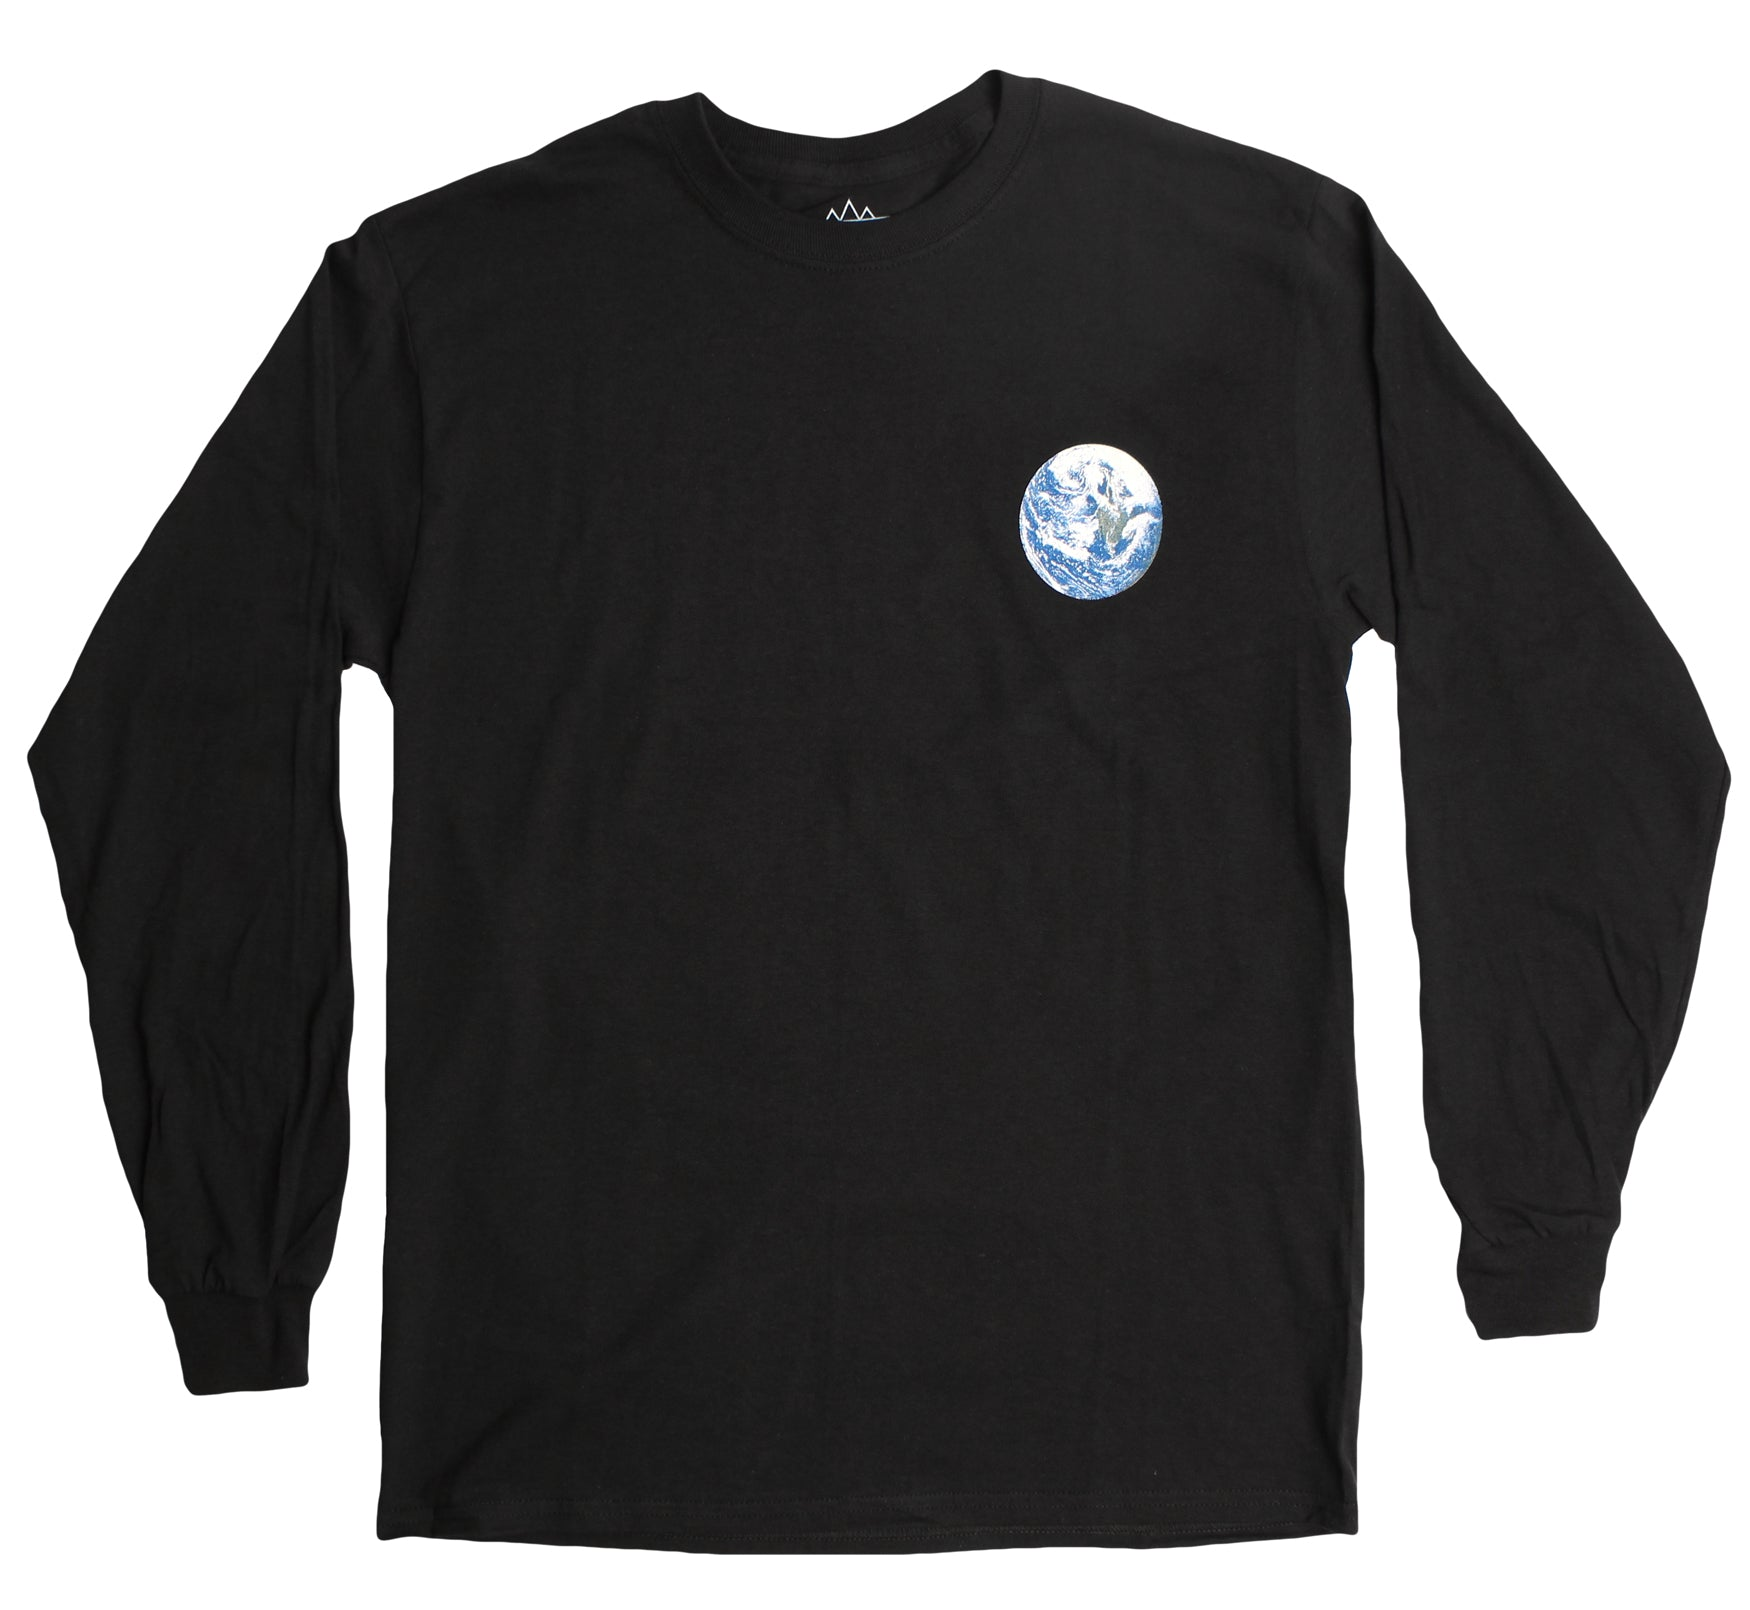 Astronaut Over Earth L/S black T-shirt by Altru Apparel